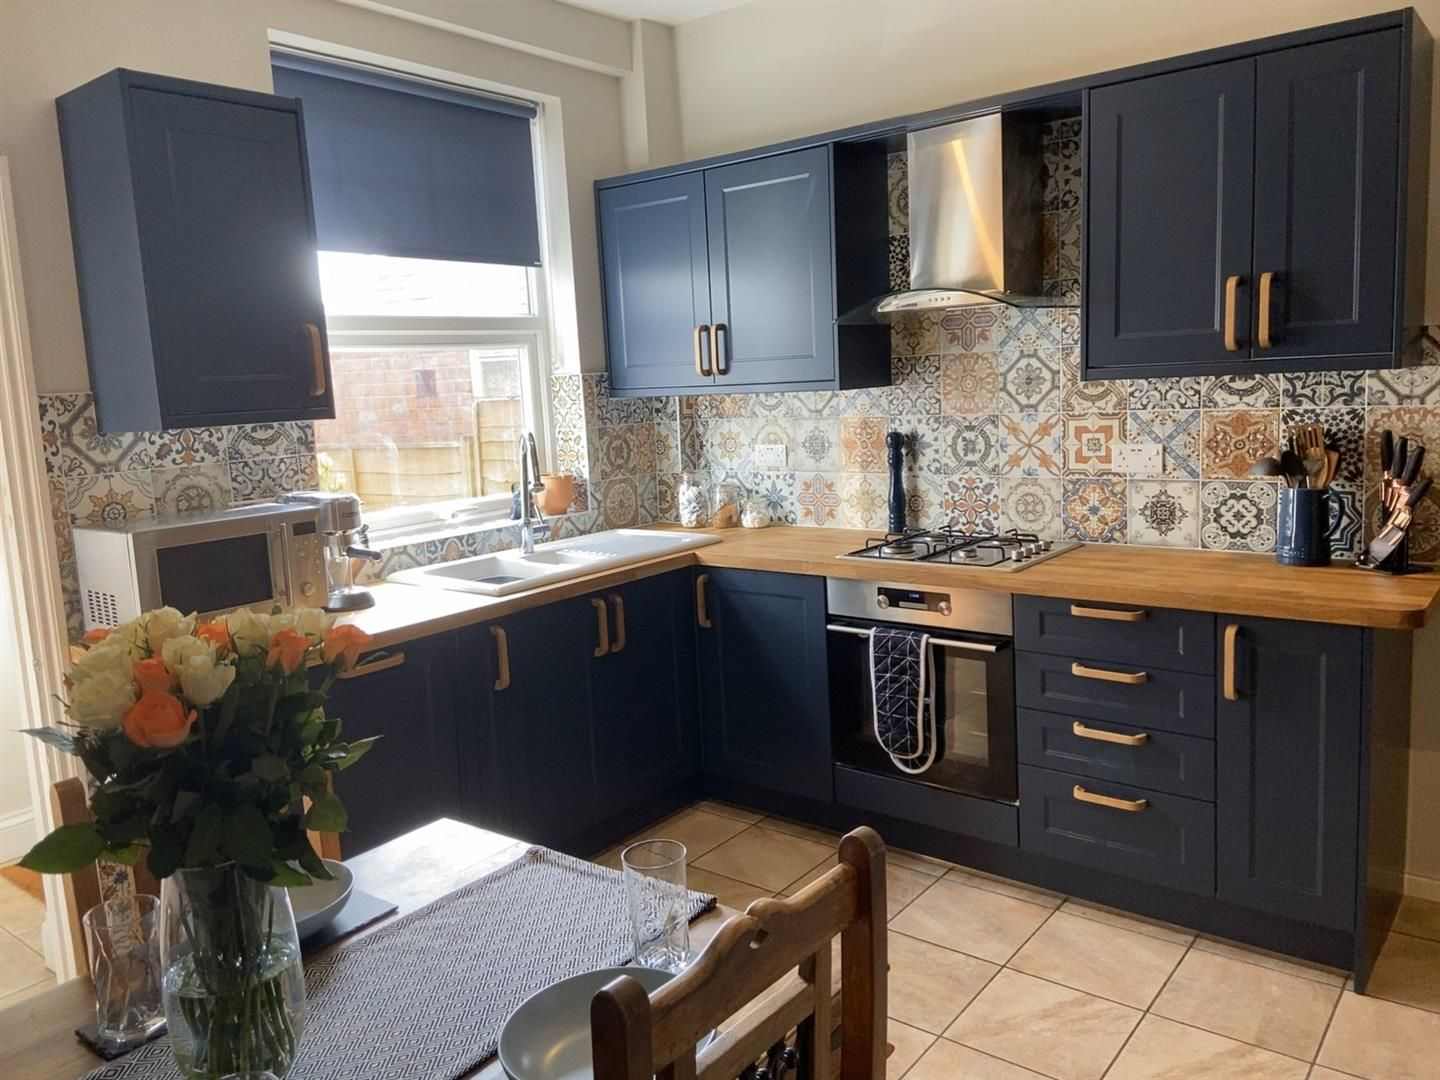 3 bed terraced for sale in Wollaston  - Property Image 2